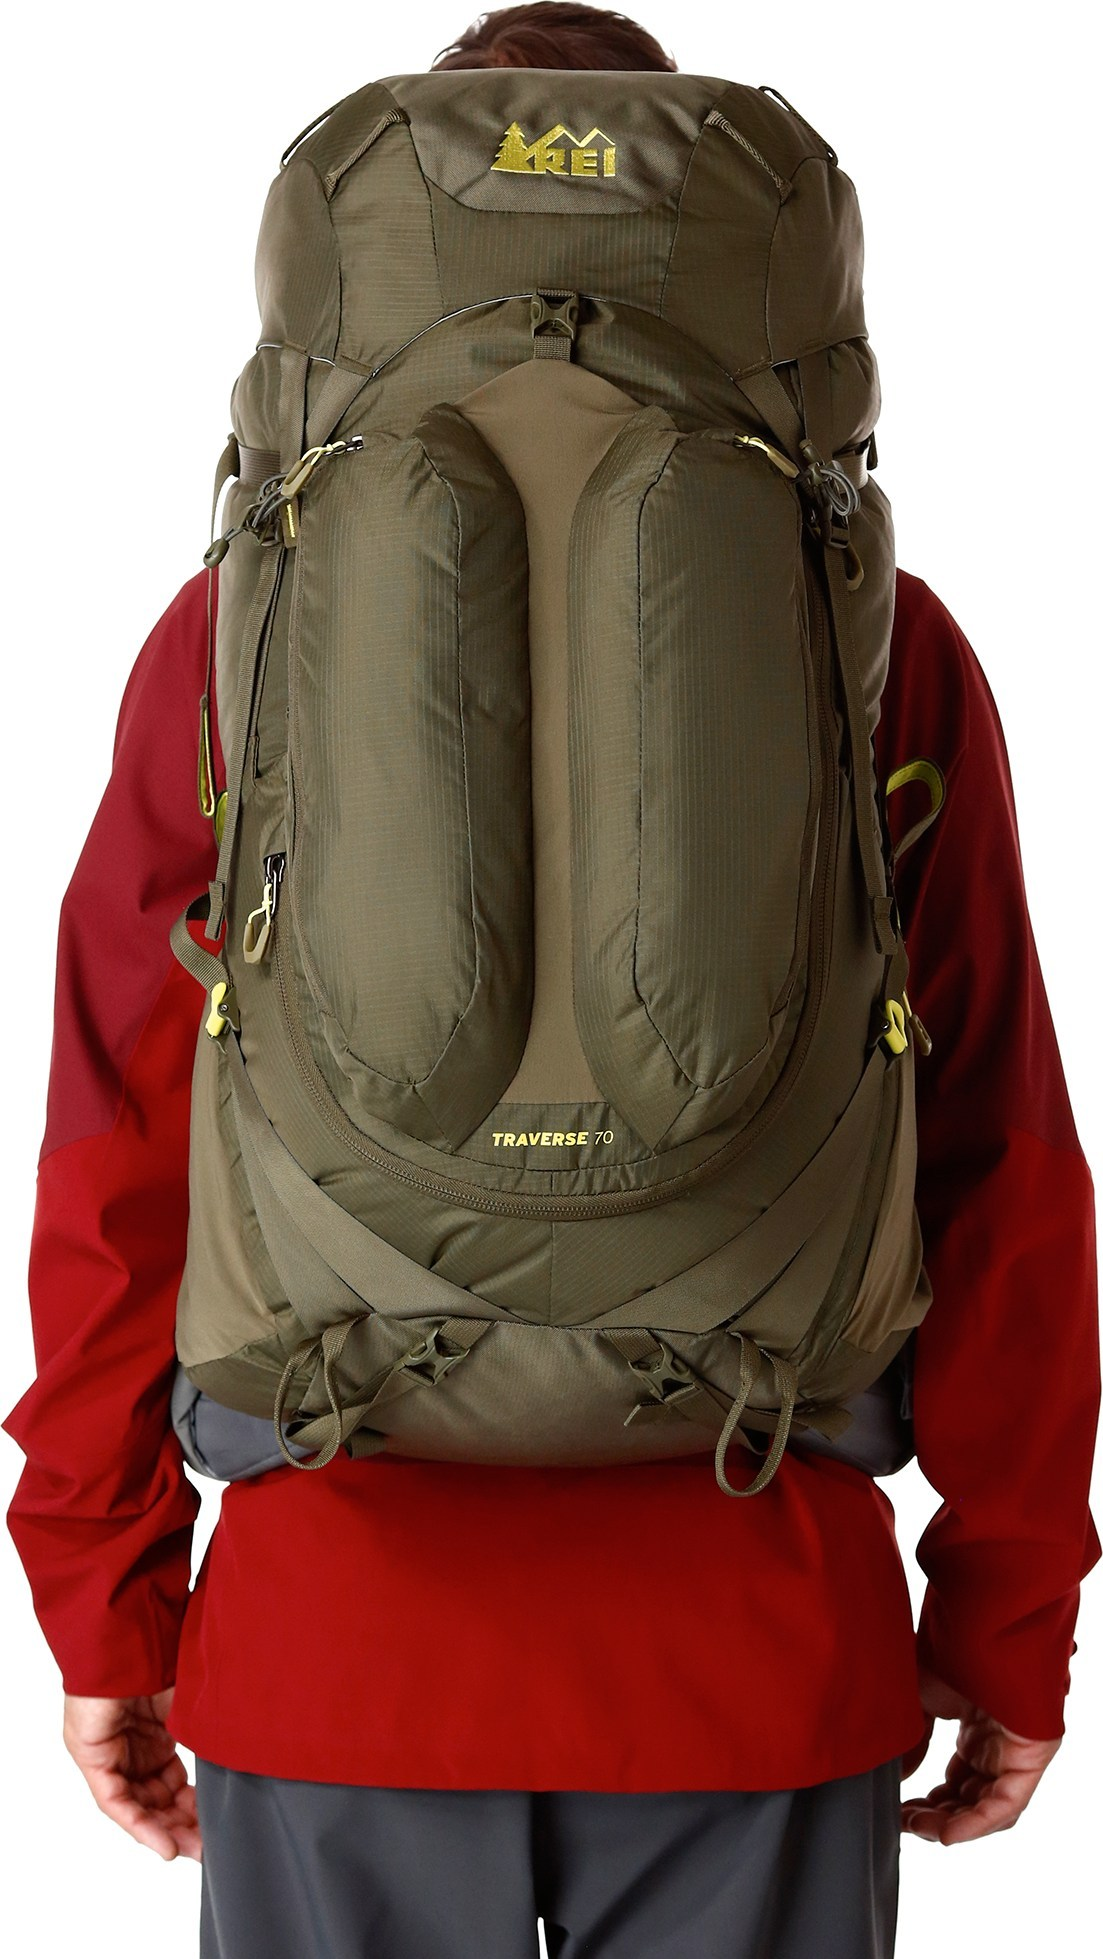 Rei traverse 70 pack thrill on for Rei fishing gear